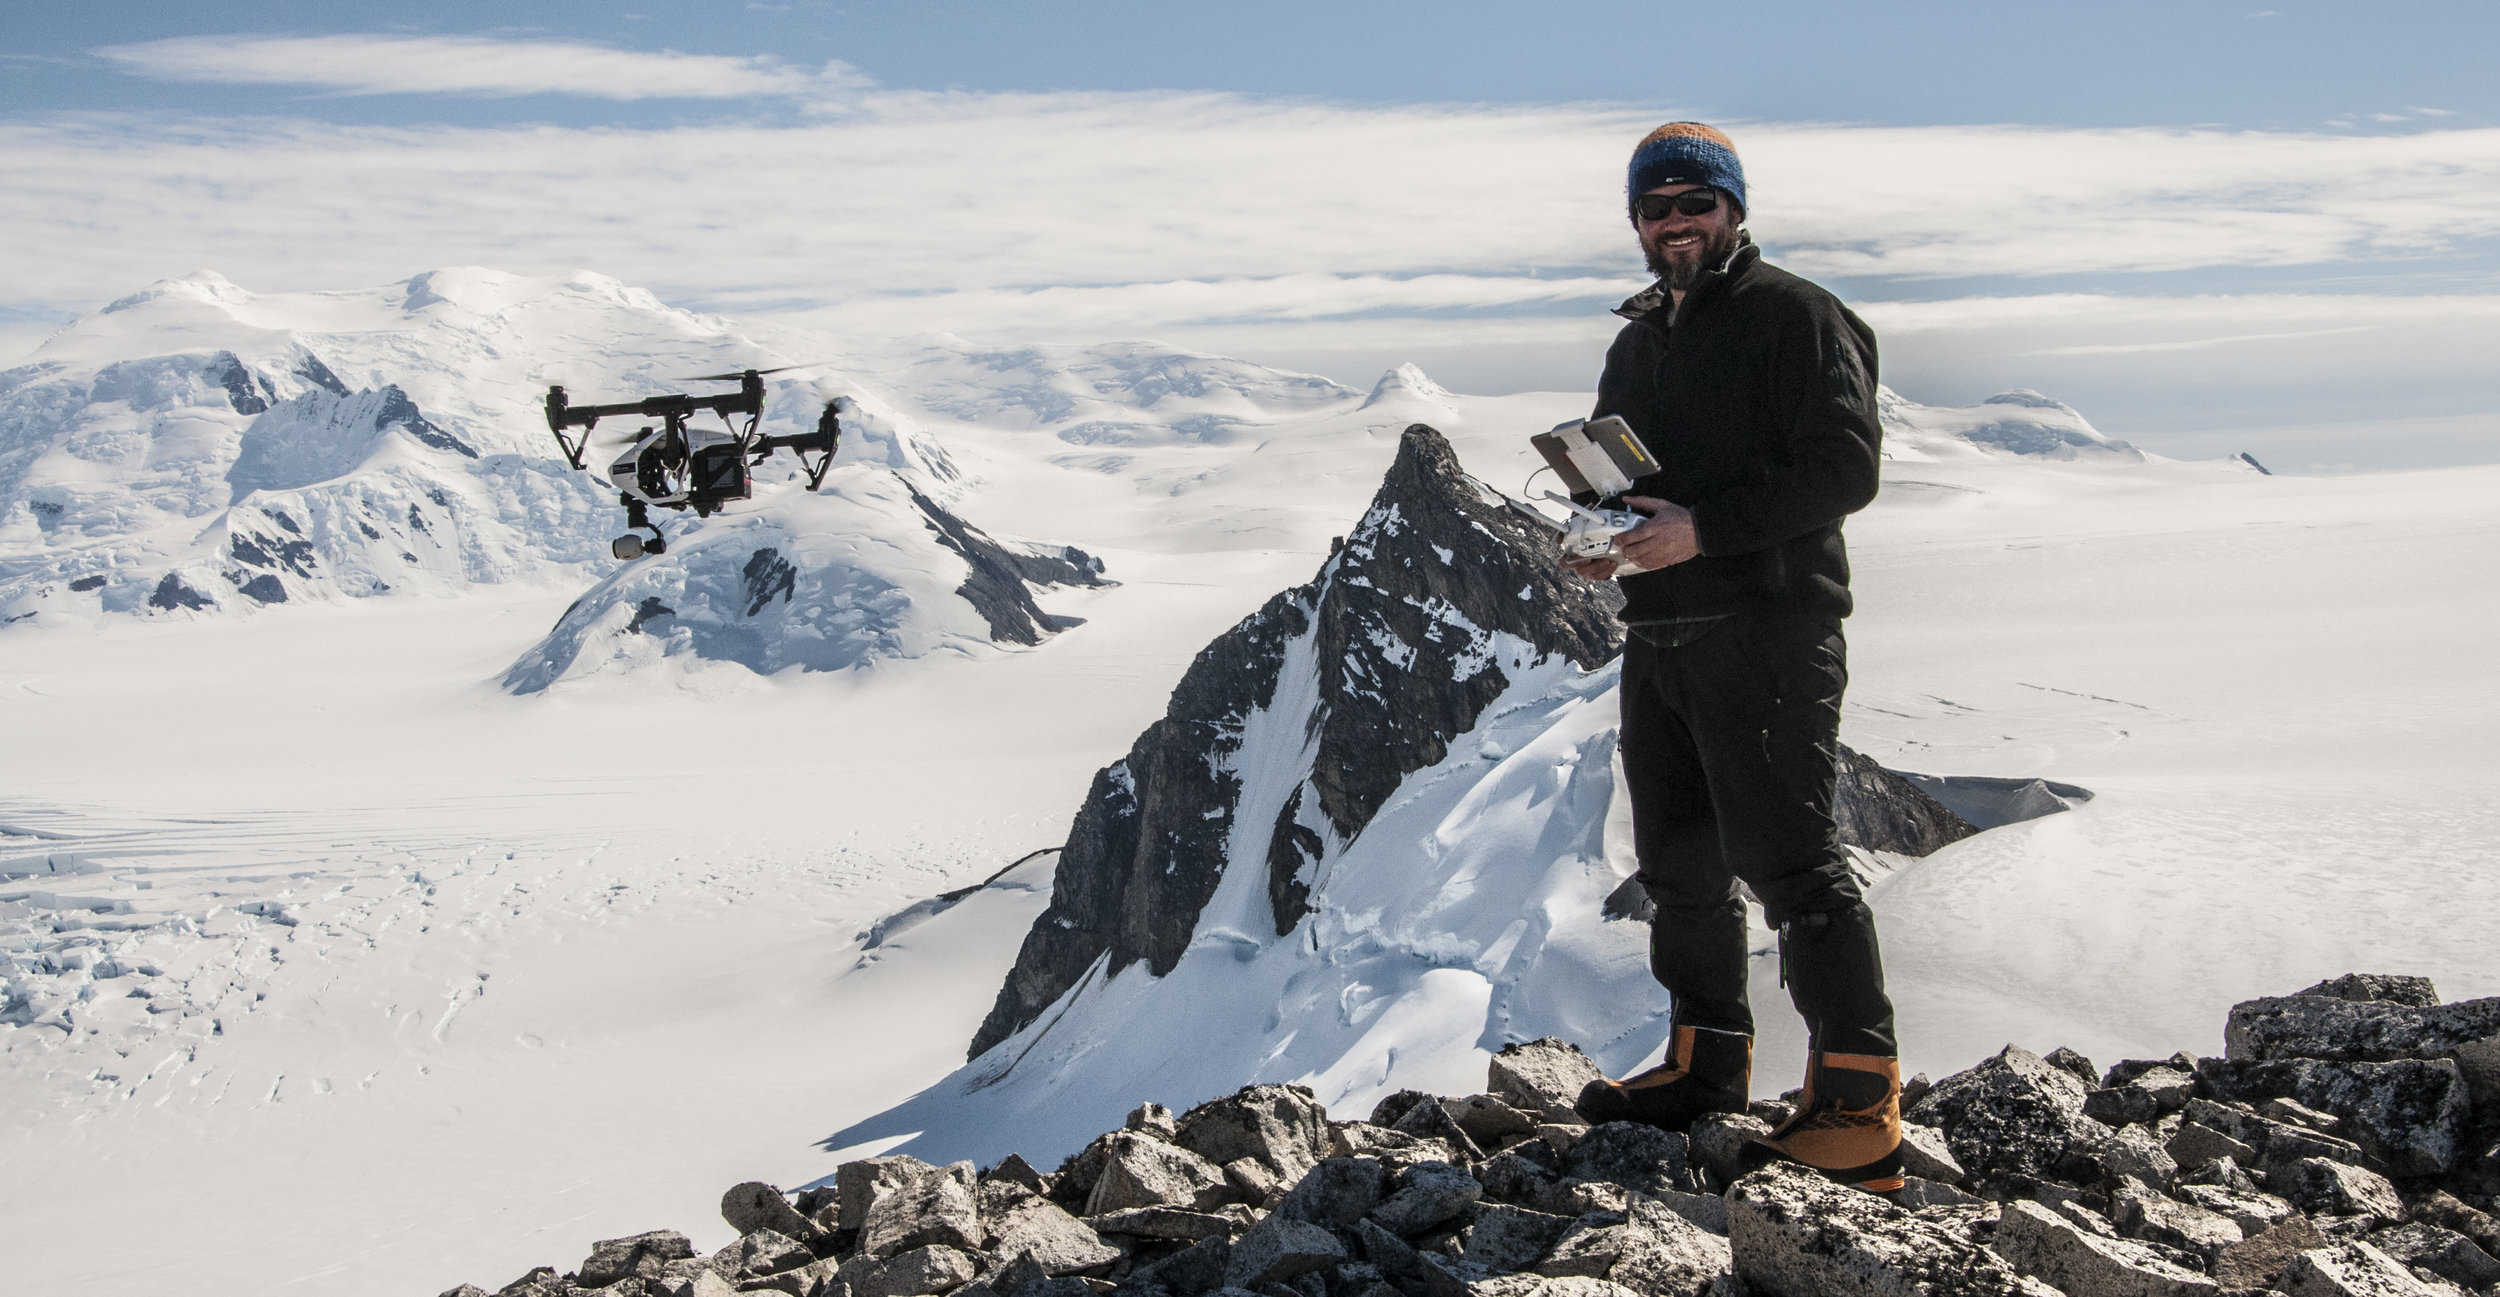 Filming with the drone on a mountain called Stork in Antarctica 2017